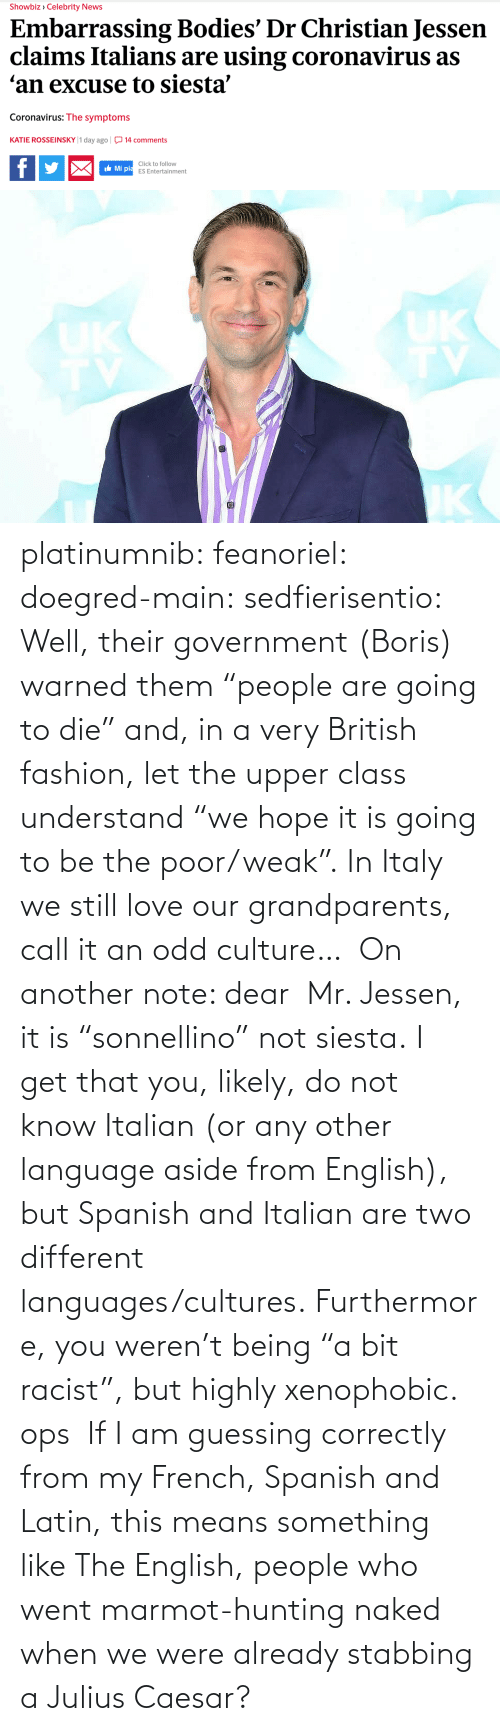 "Bit: platinumnib:  feanoriel: doegred-main:  sedfierisentio:  Well, their government (Boris) warned them ""people are going to die"" and, in a very British fashion, let the upper class understand ""we hope it is going to be the poor/weak"". In Italy we still love our grandparents, call it an odd culture…  On another note: dear  Mr. Jessen, it is ""sonnellino"" not siesta. I get that you, likely, do not know Italian (or any other language aside from English), but Spanish and Italian are two different languages/cultures. Furthermore, you weren't being ""a bit racist"", but highly xenophobic.   ops   If I am guessing correctly from my French, Spanish and Latin, this means something like The English, people who went marmot-hunting naked when we were already stabbing a Julius Caesar?"